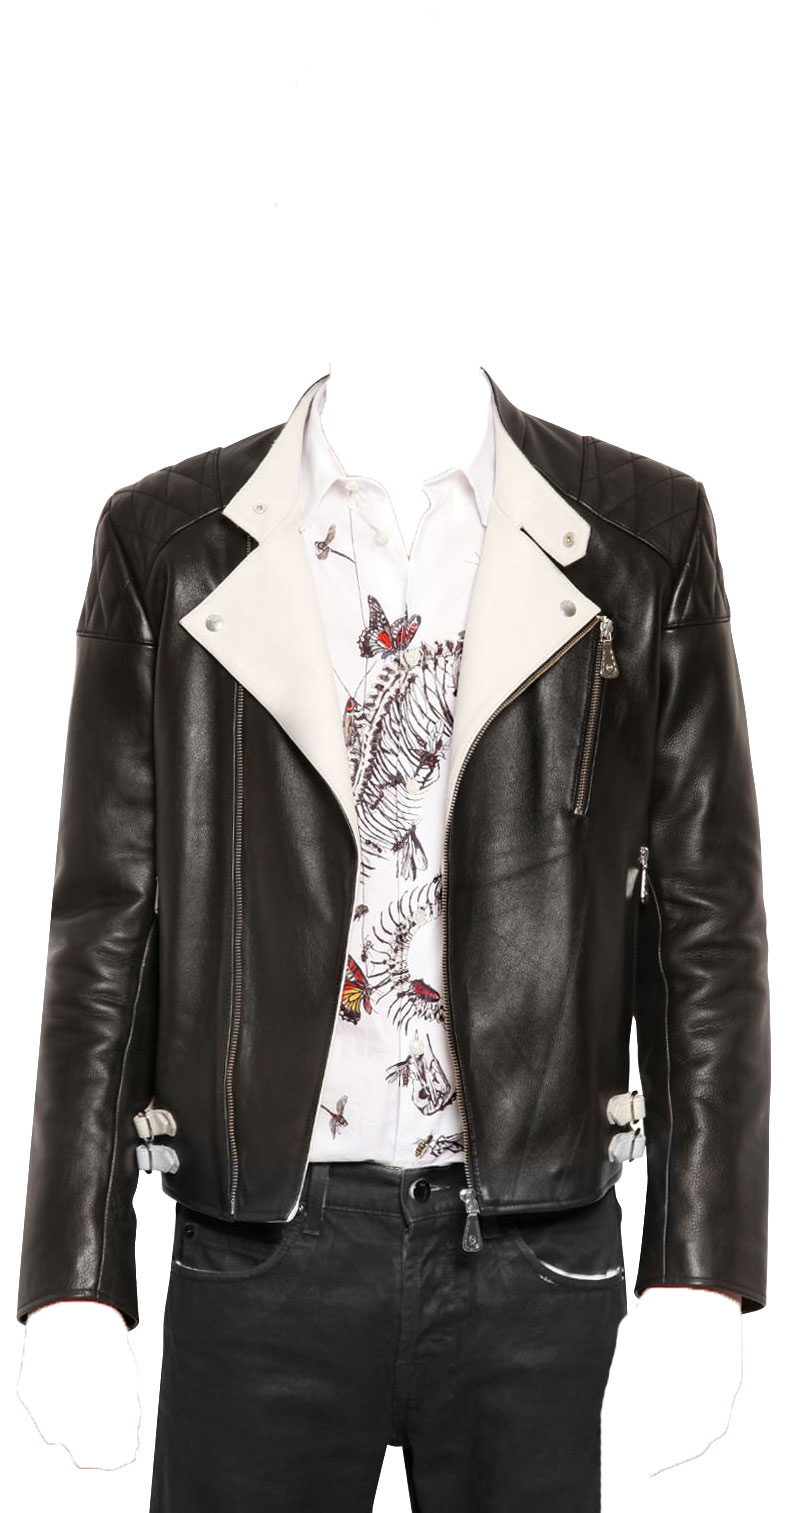 a9396c7f2 Mens leather jacket with contrast detail